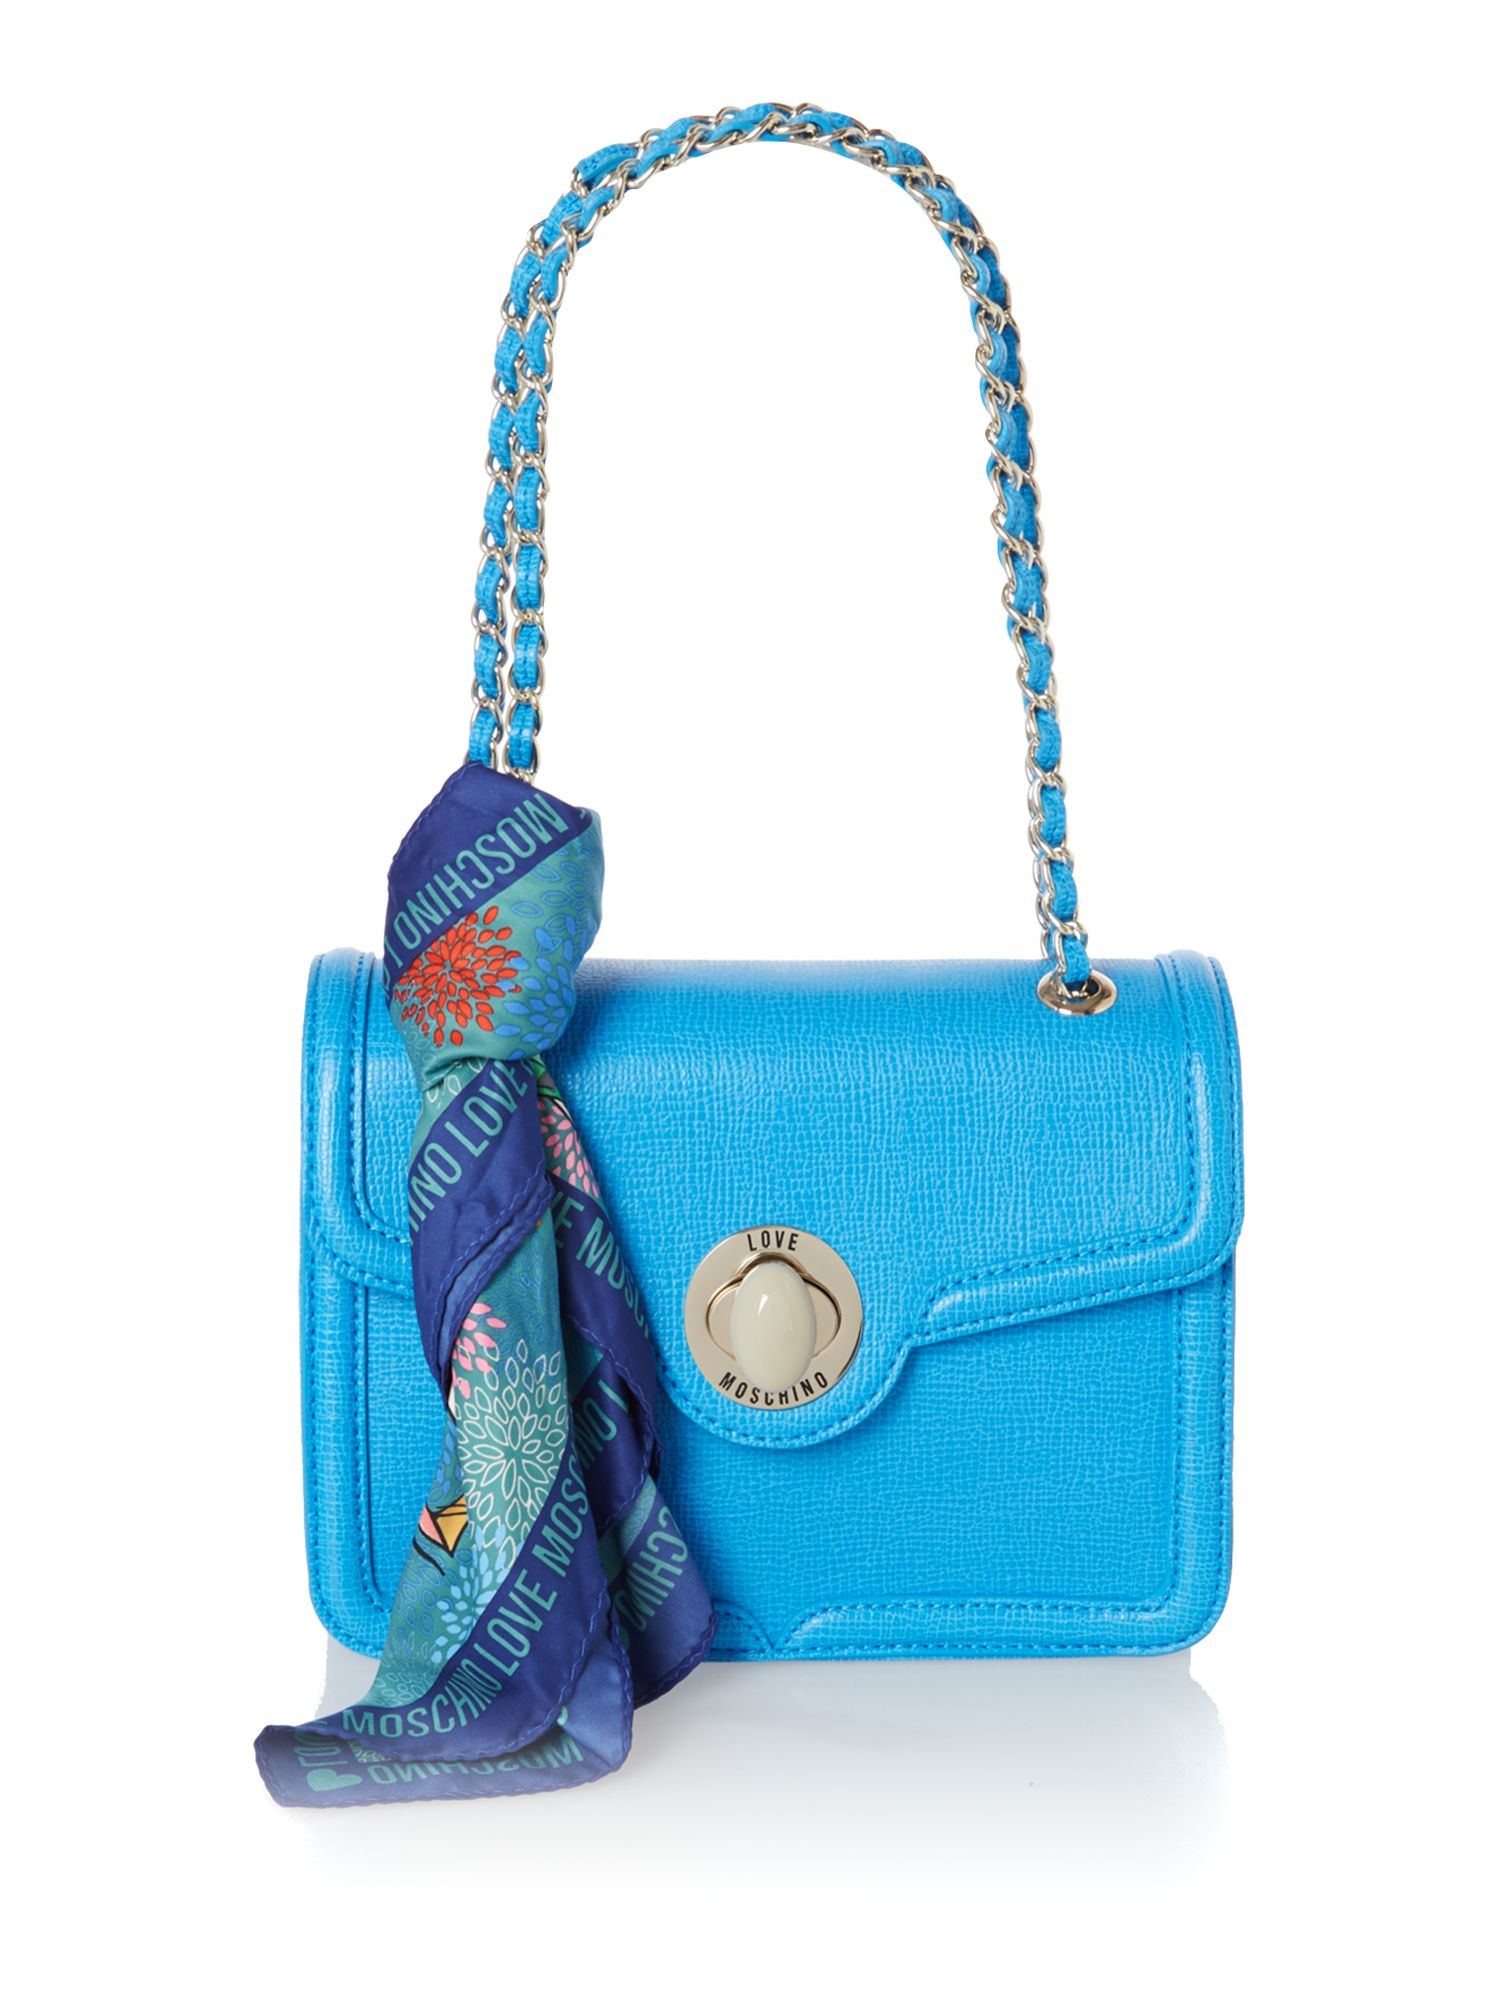 Blue small saffiano shoulder bag